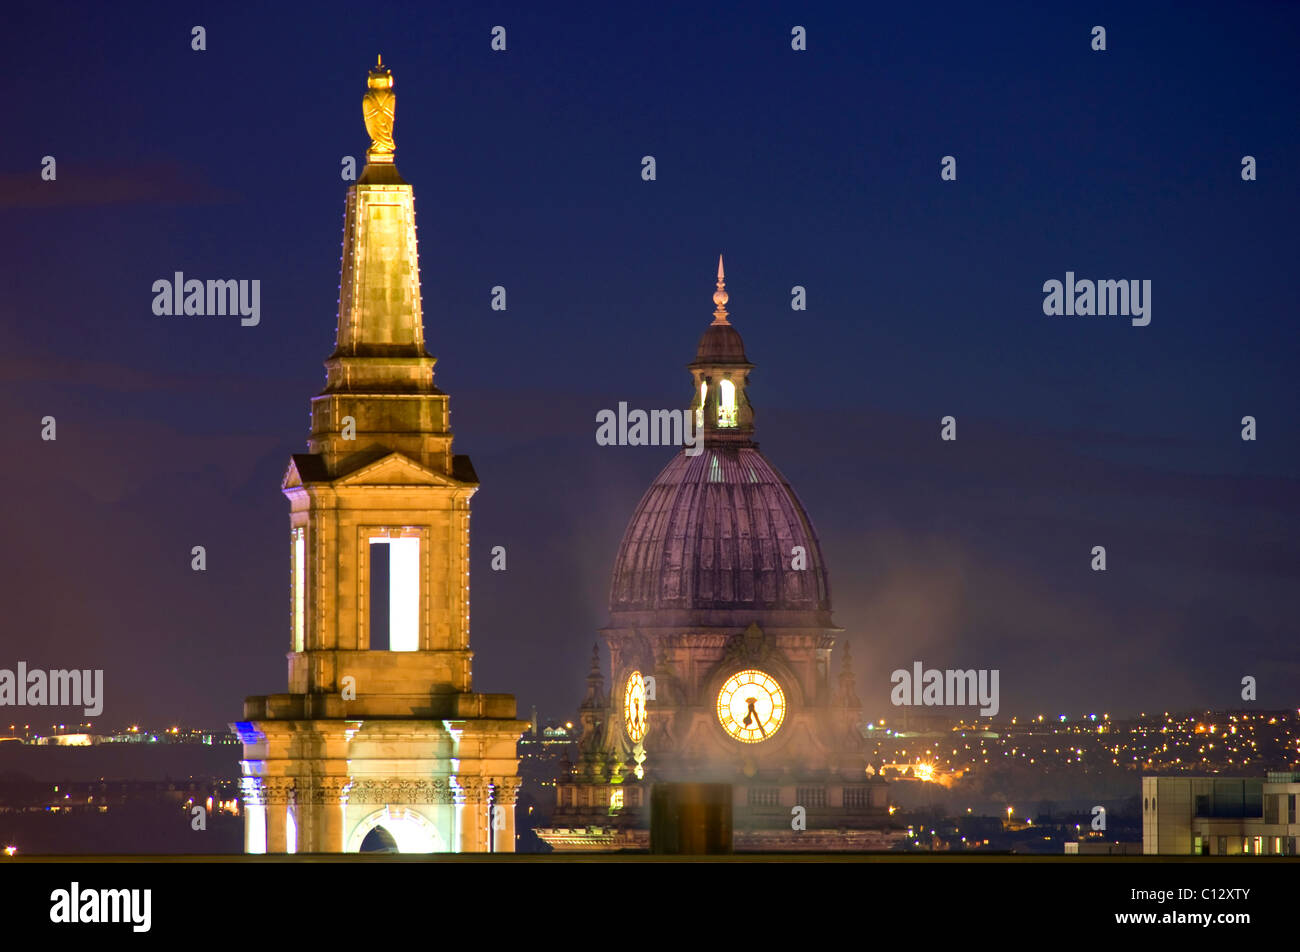 leeds civic hall and Leeds town hall built in 1858 designed by cuthbert brodrick leeds yorkshire uk - Stock Image